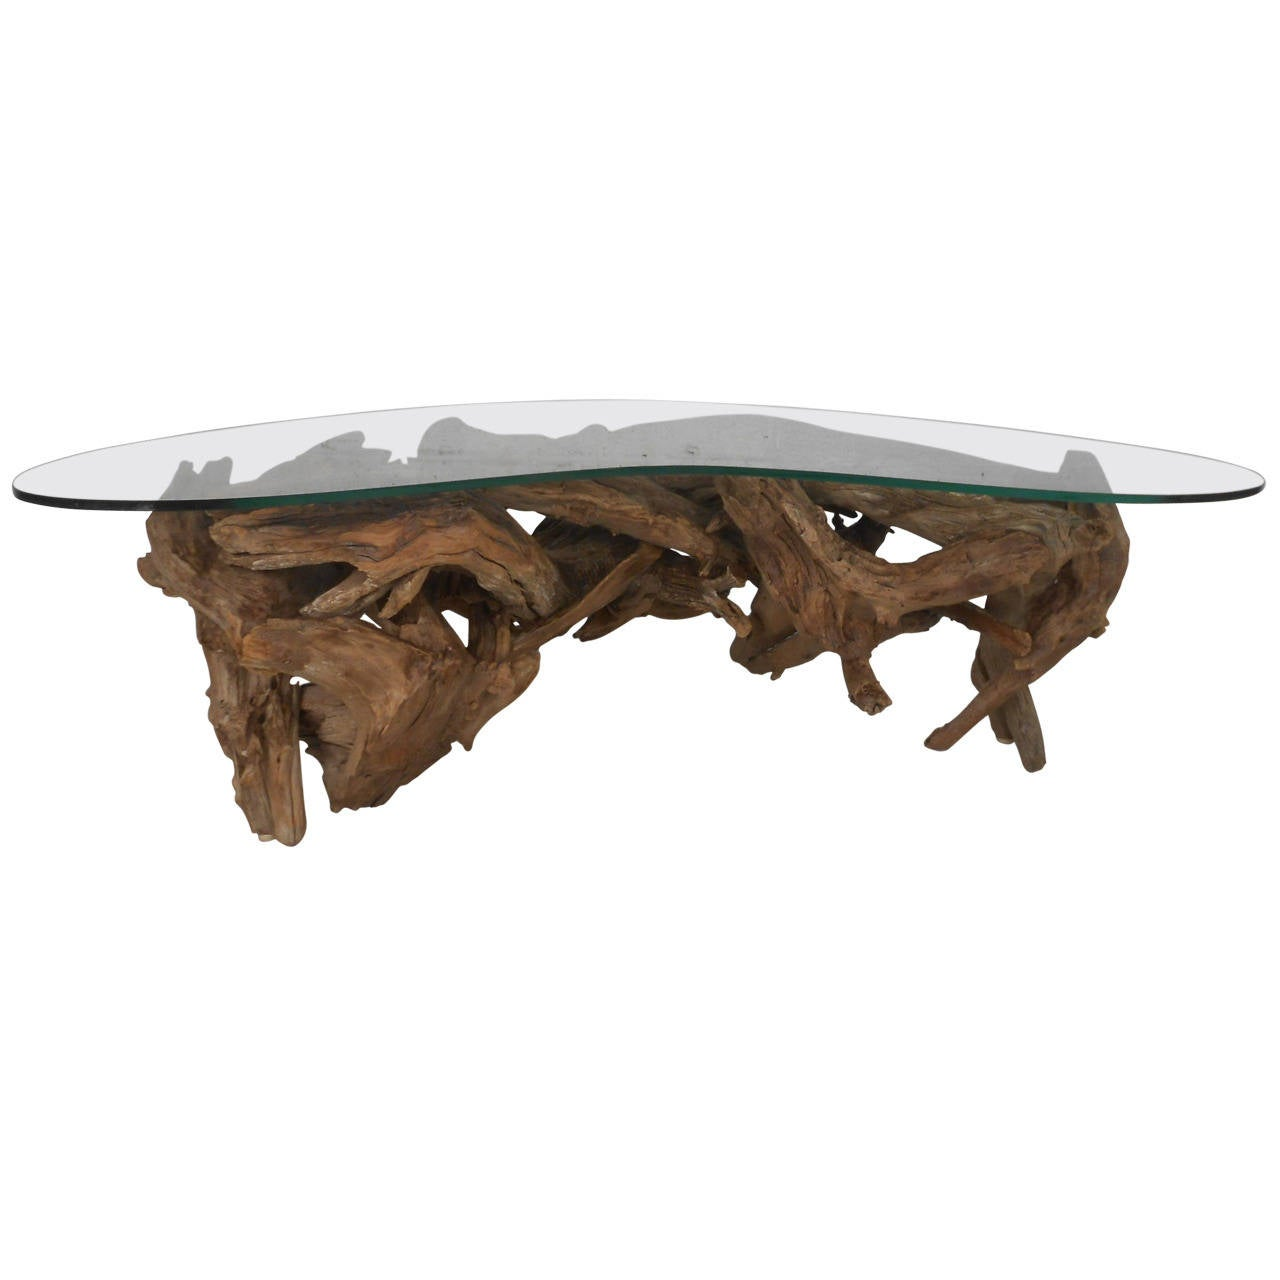 driftwood coffee table at 1stdibs. Black Bedroom Furniture Sets. Home Design Ideas